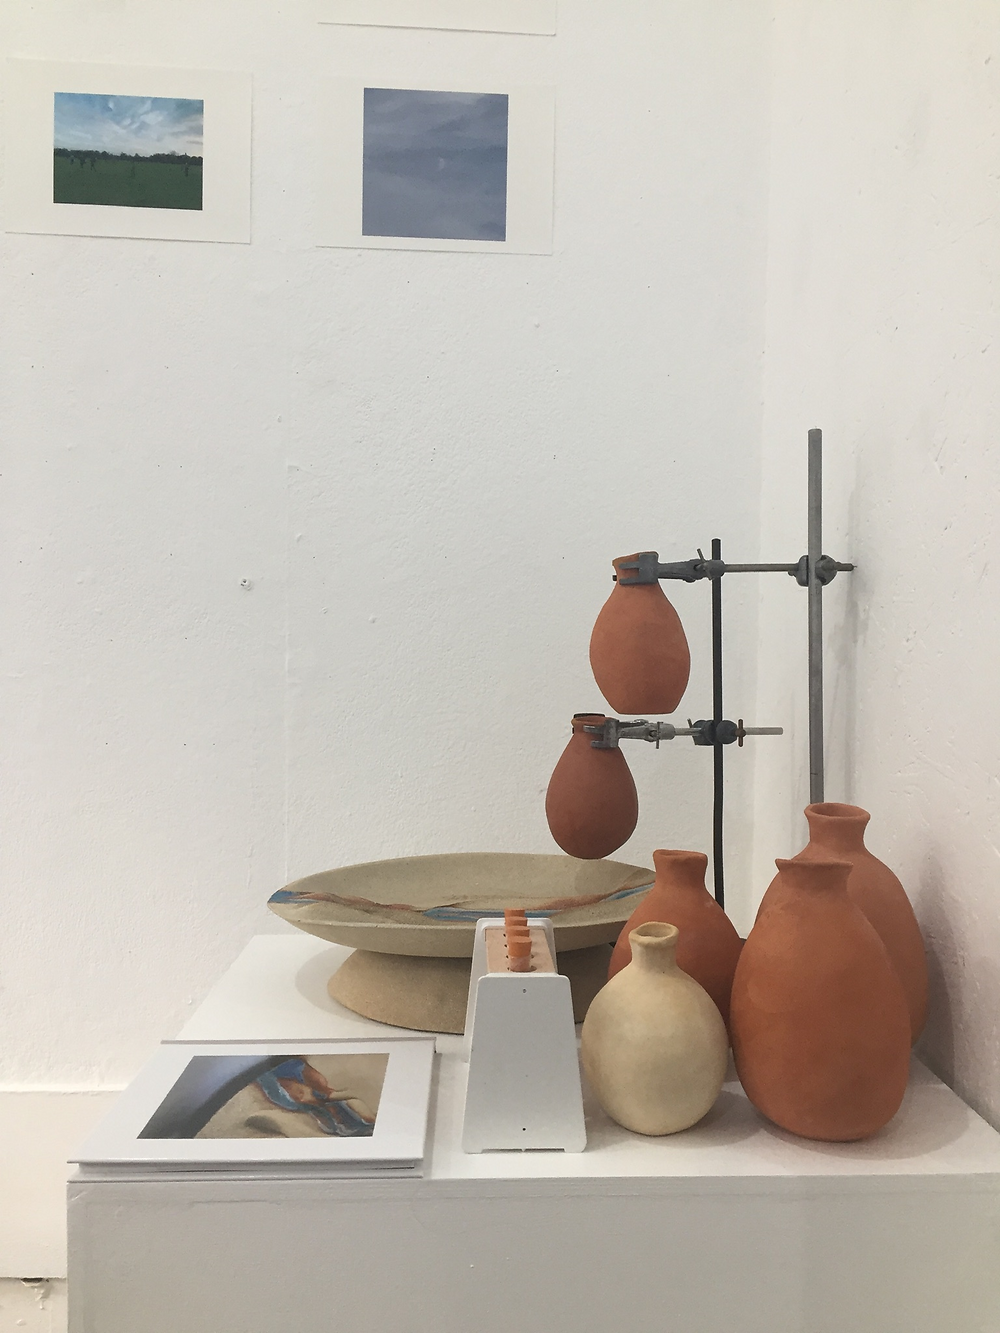 Shared water, contested water 2018. Installation view, Gallery 9, Cambridge, UK.